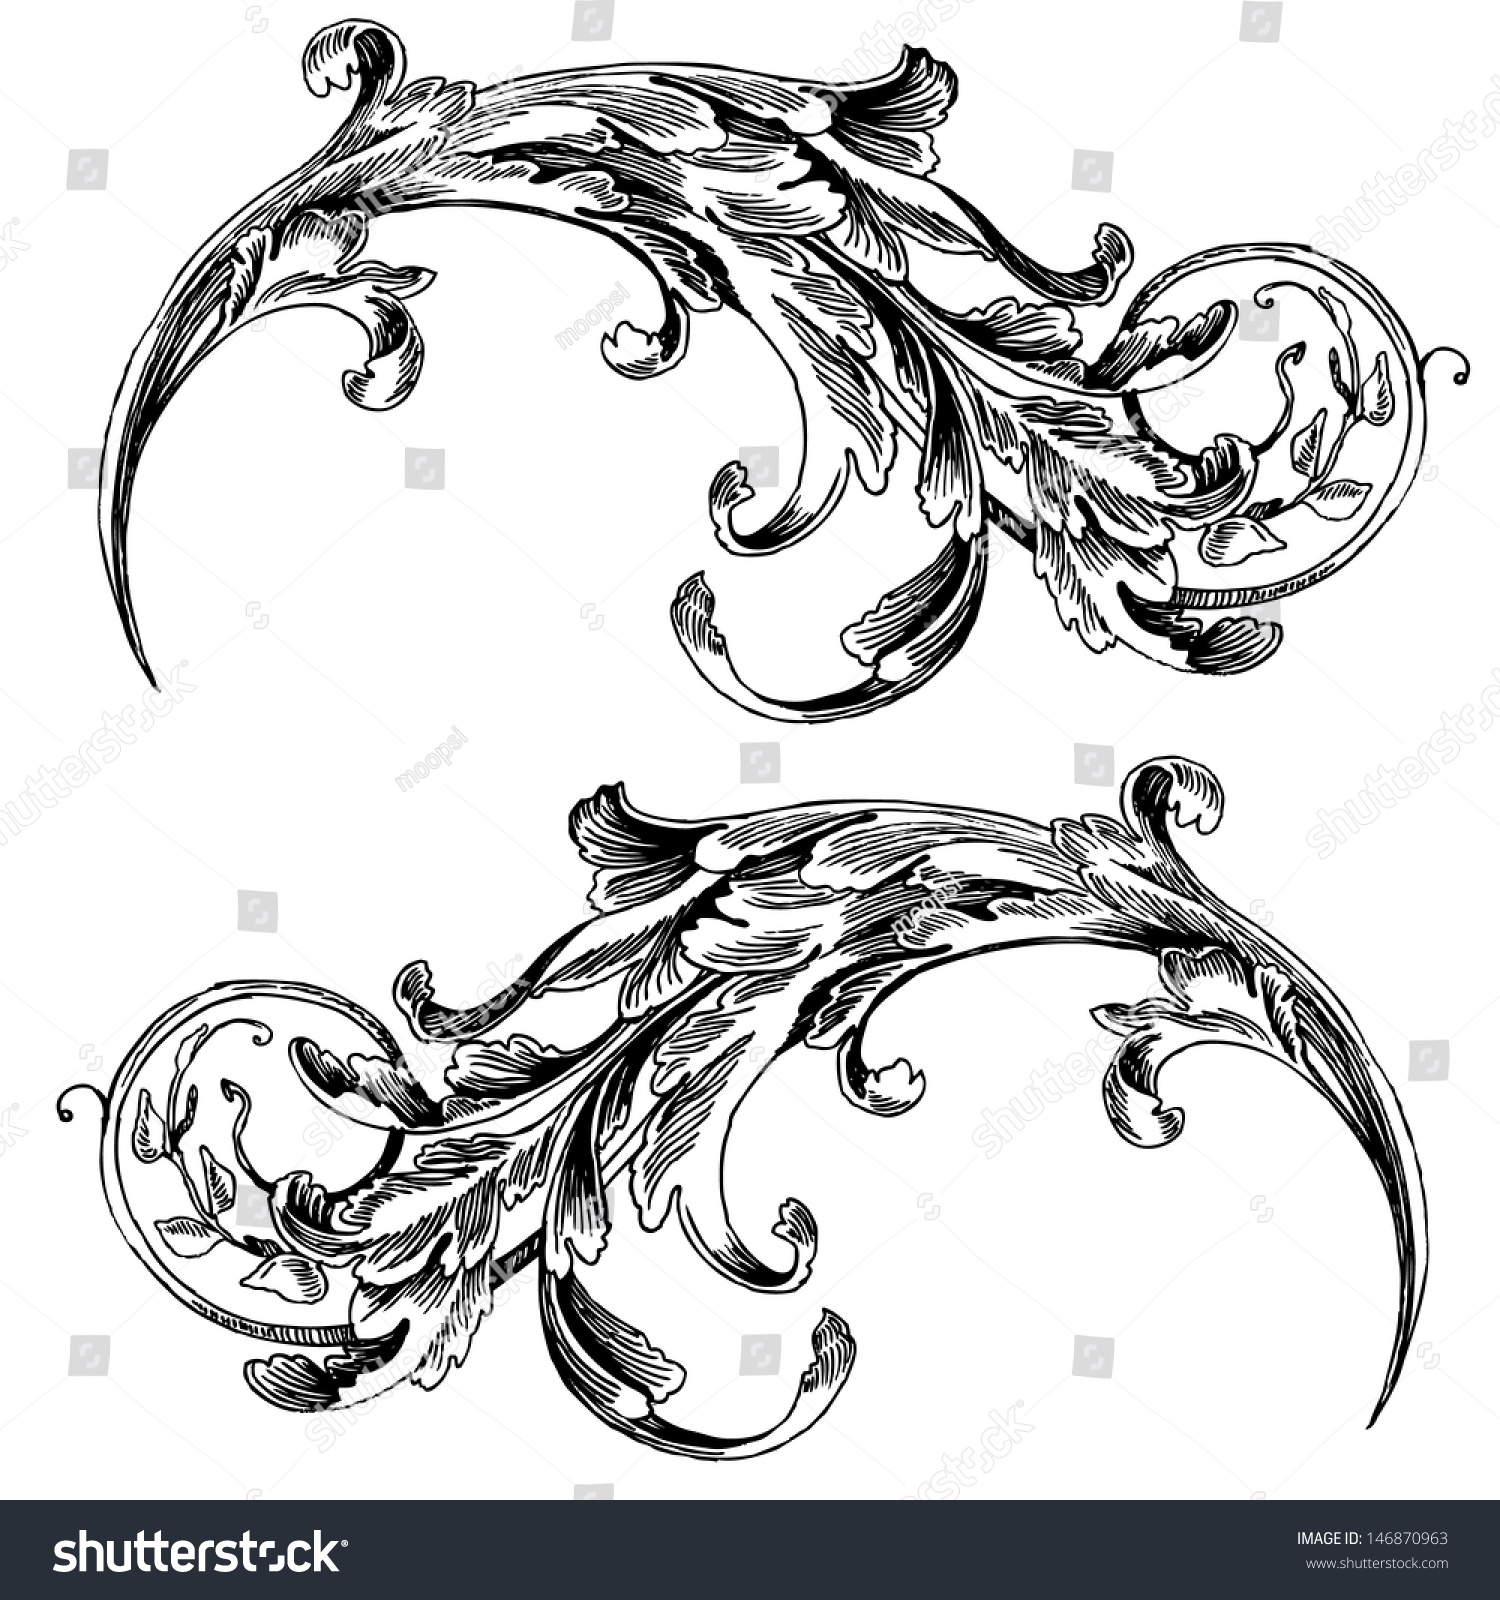 Antique Scroll Design: Vector Vintage Baroque Engraving Floral Scroll Stock